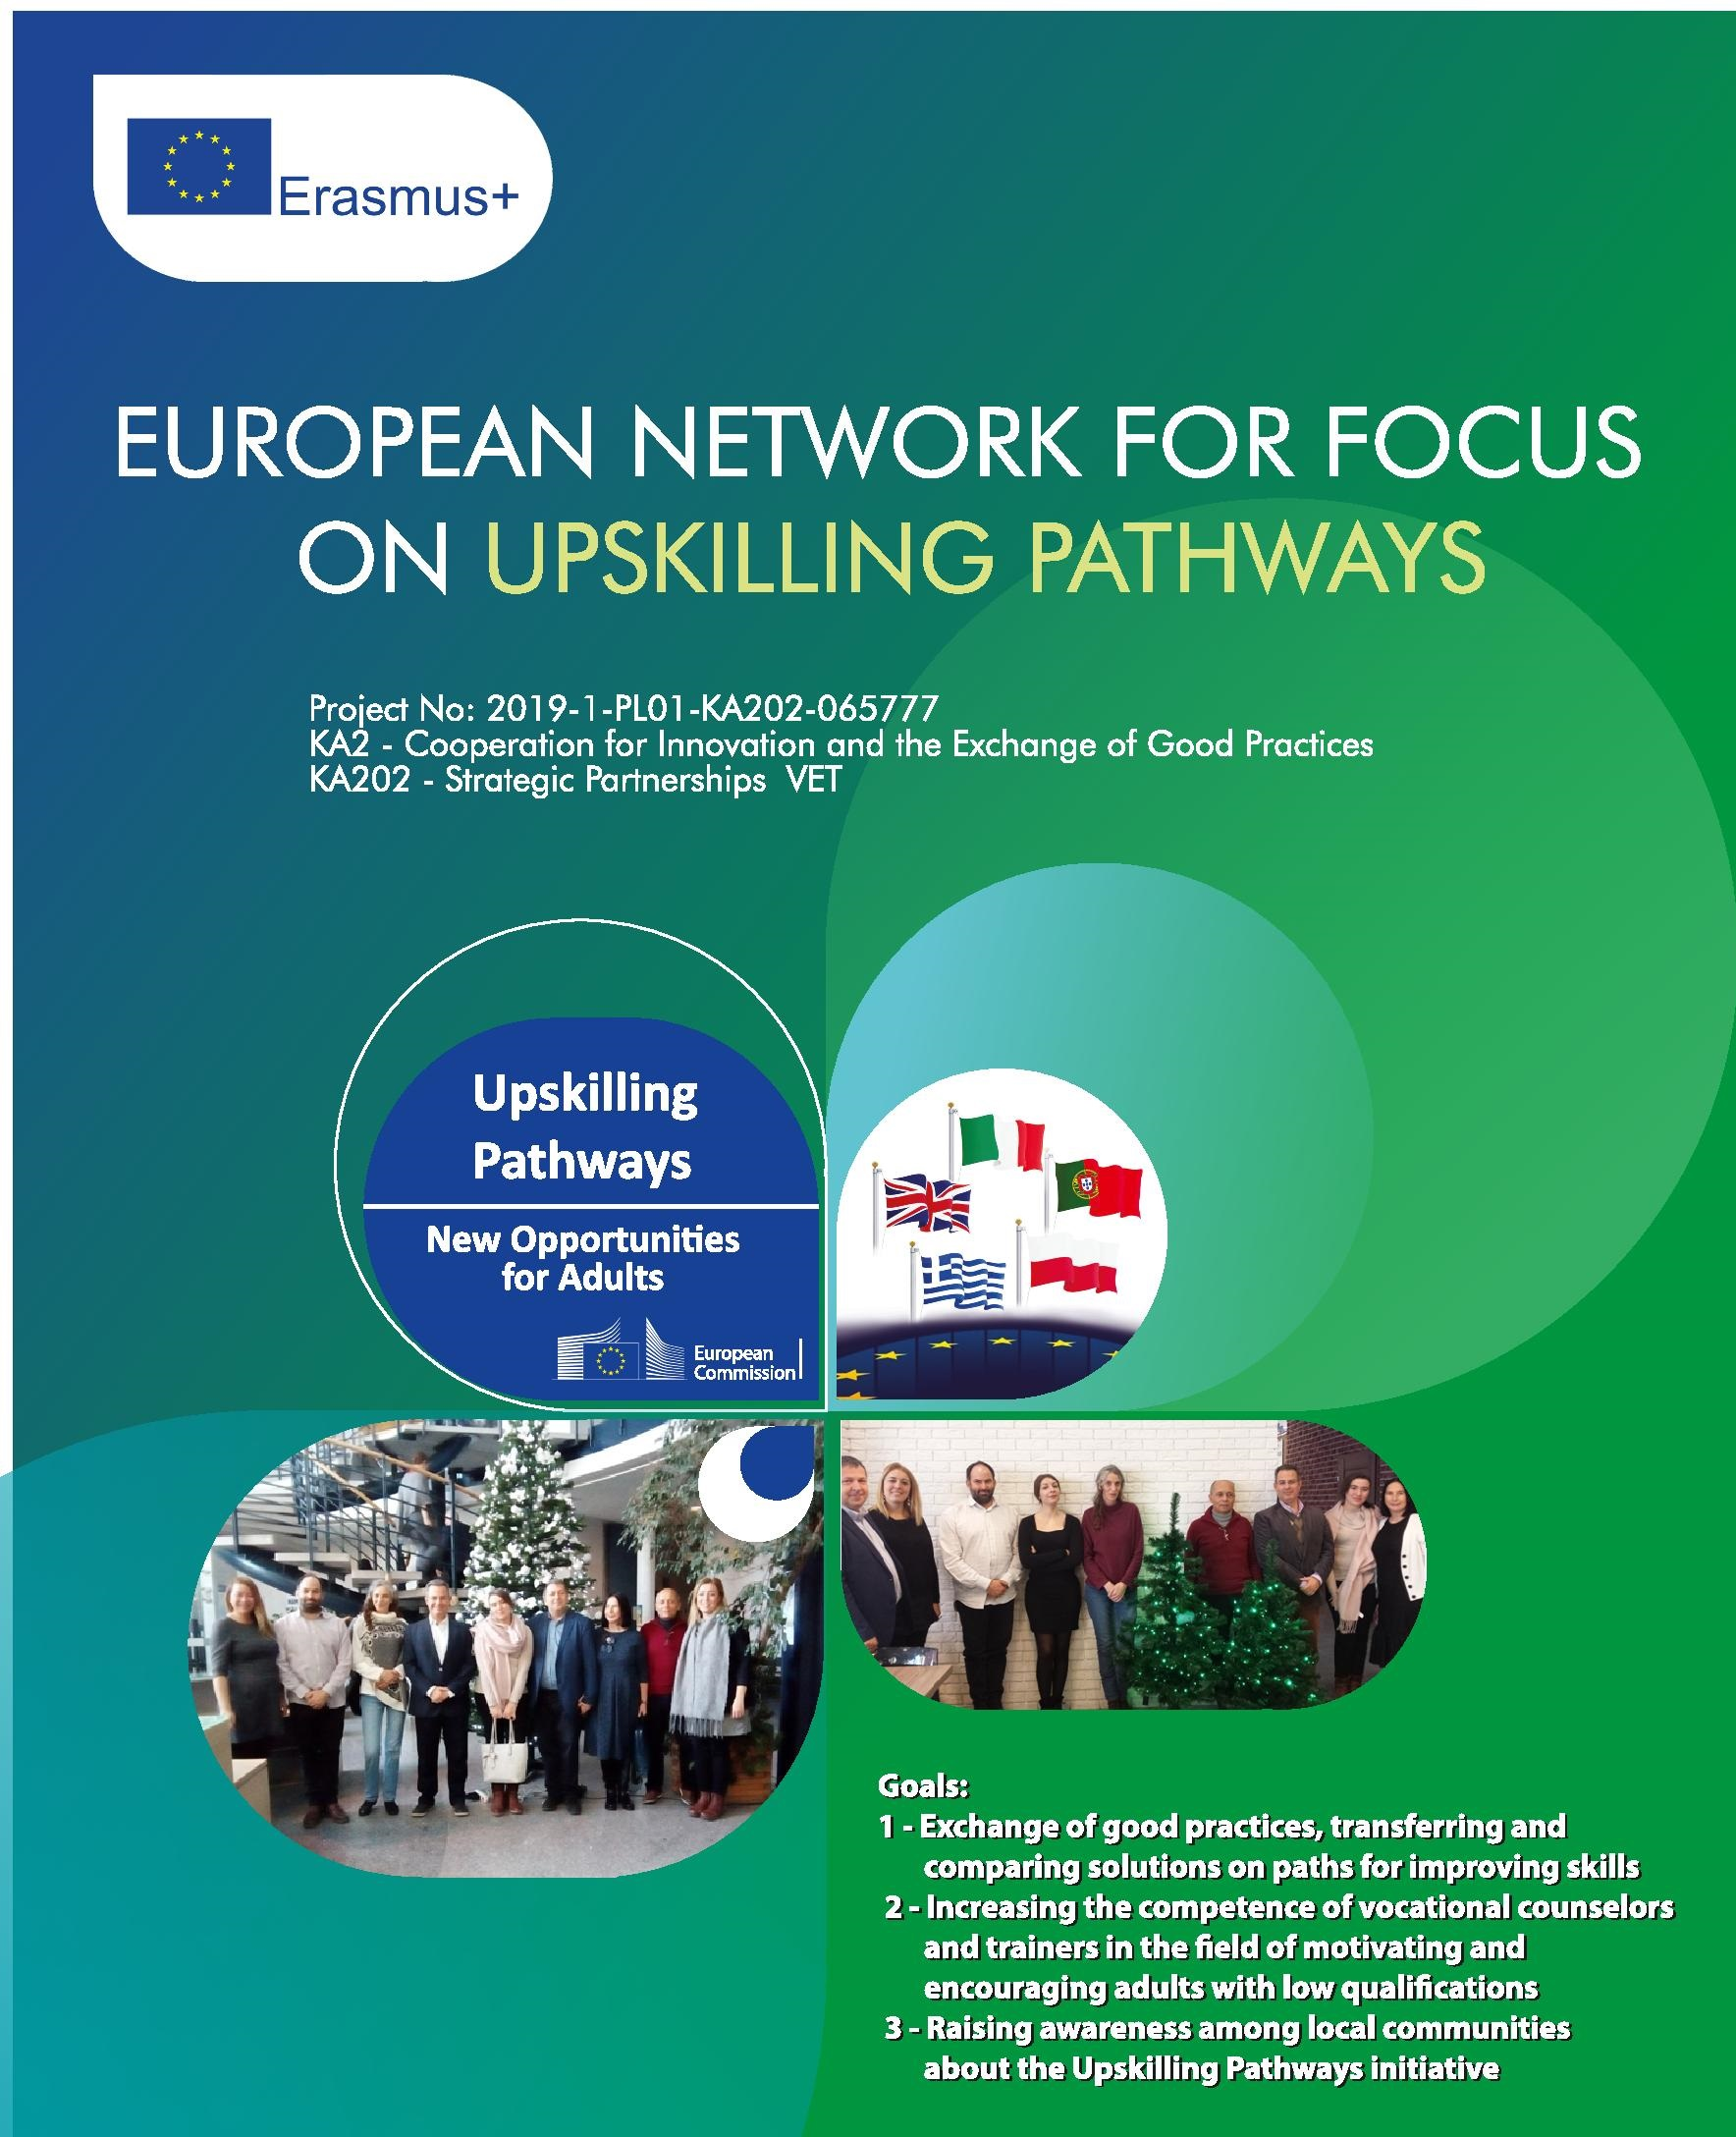 upskilling pathways